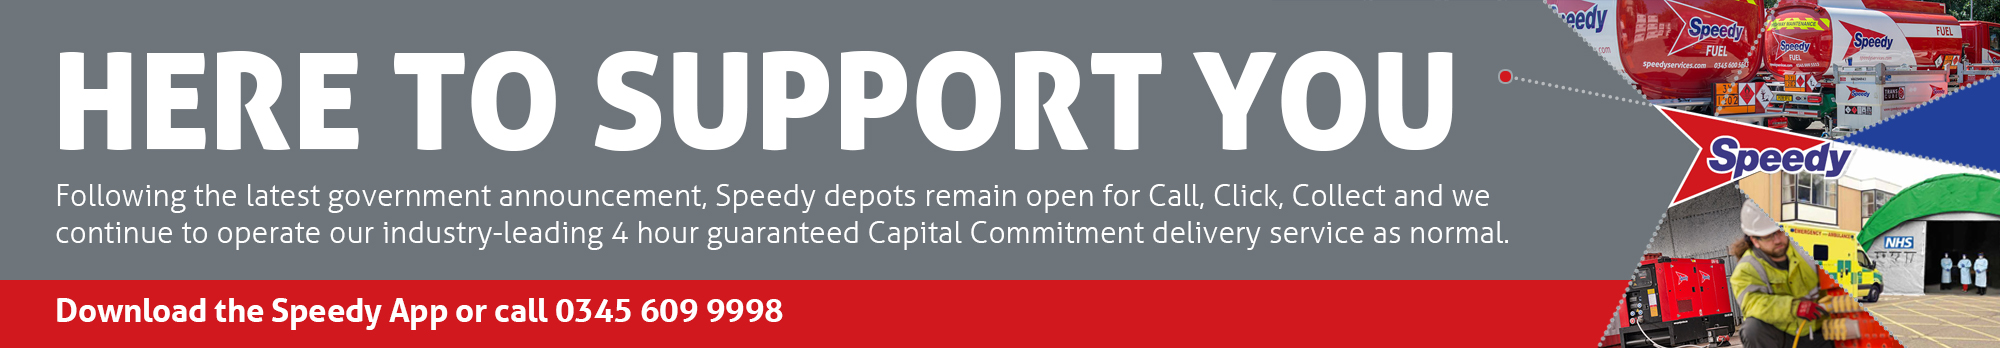 Following the latest Government announcement, Speedy depots remain open for call, click, collect